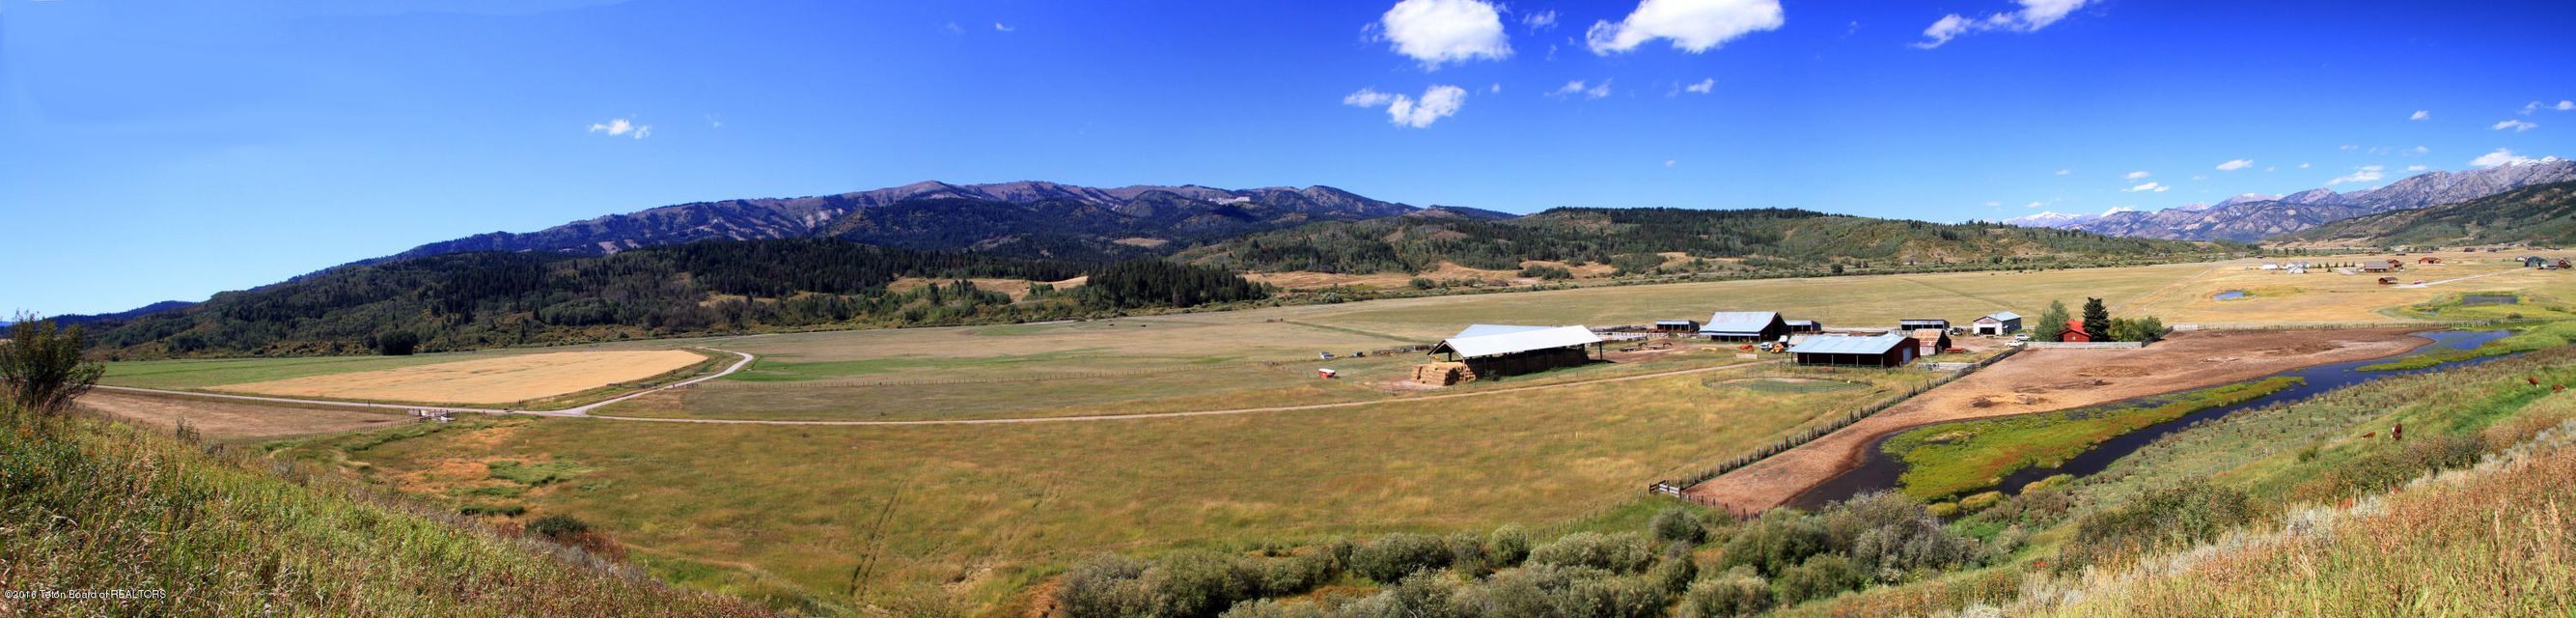 Additional photo for property listing at RISING TROUT RANCH Alpine, WY RISING TROUT RANCH 阿尔派, 怀俄明州,83128 美国